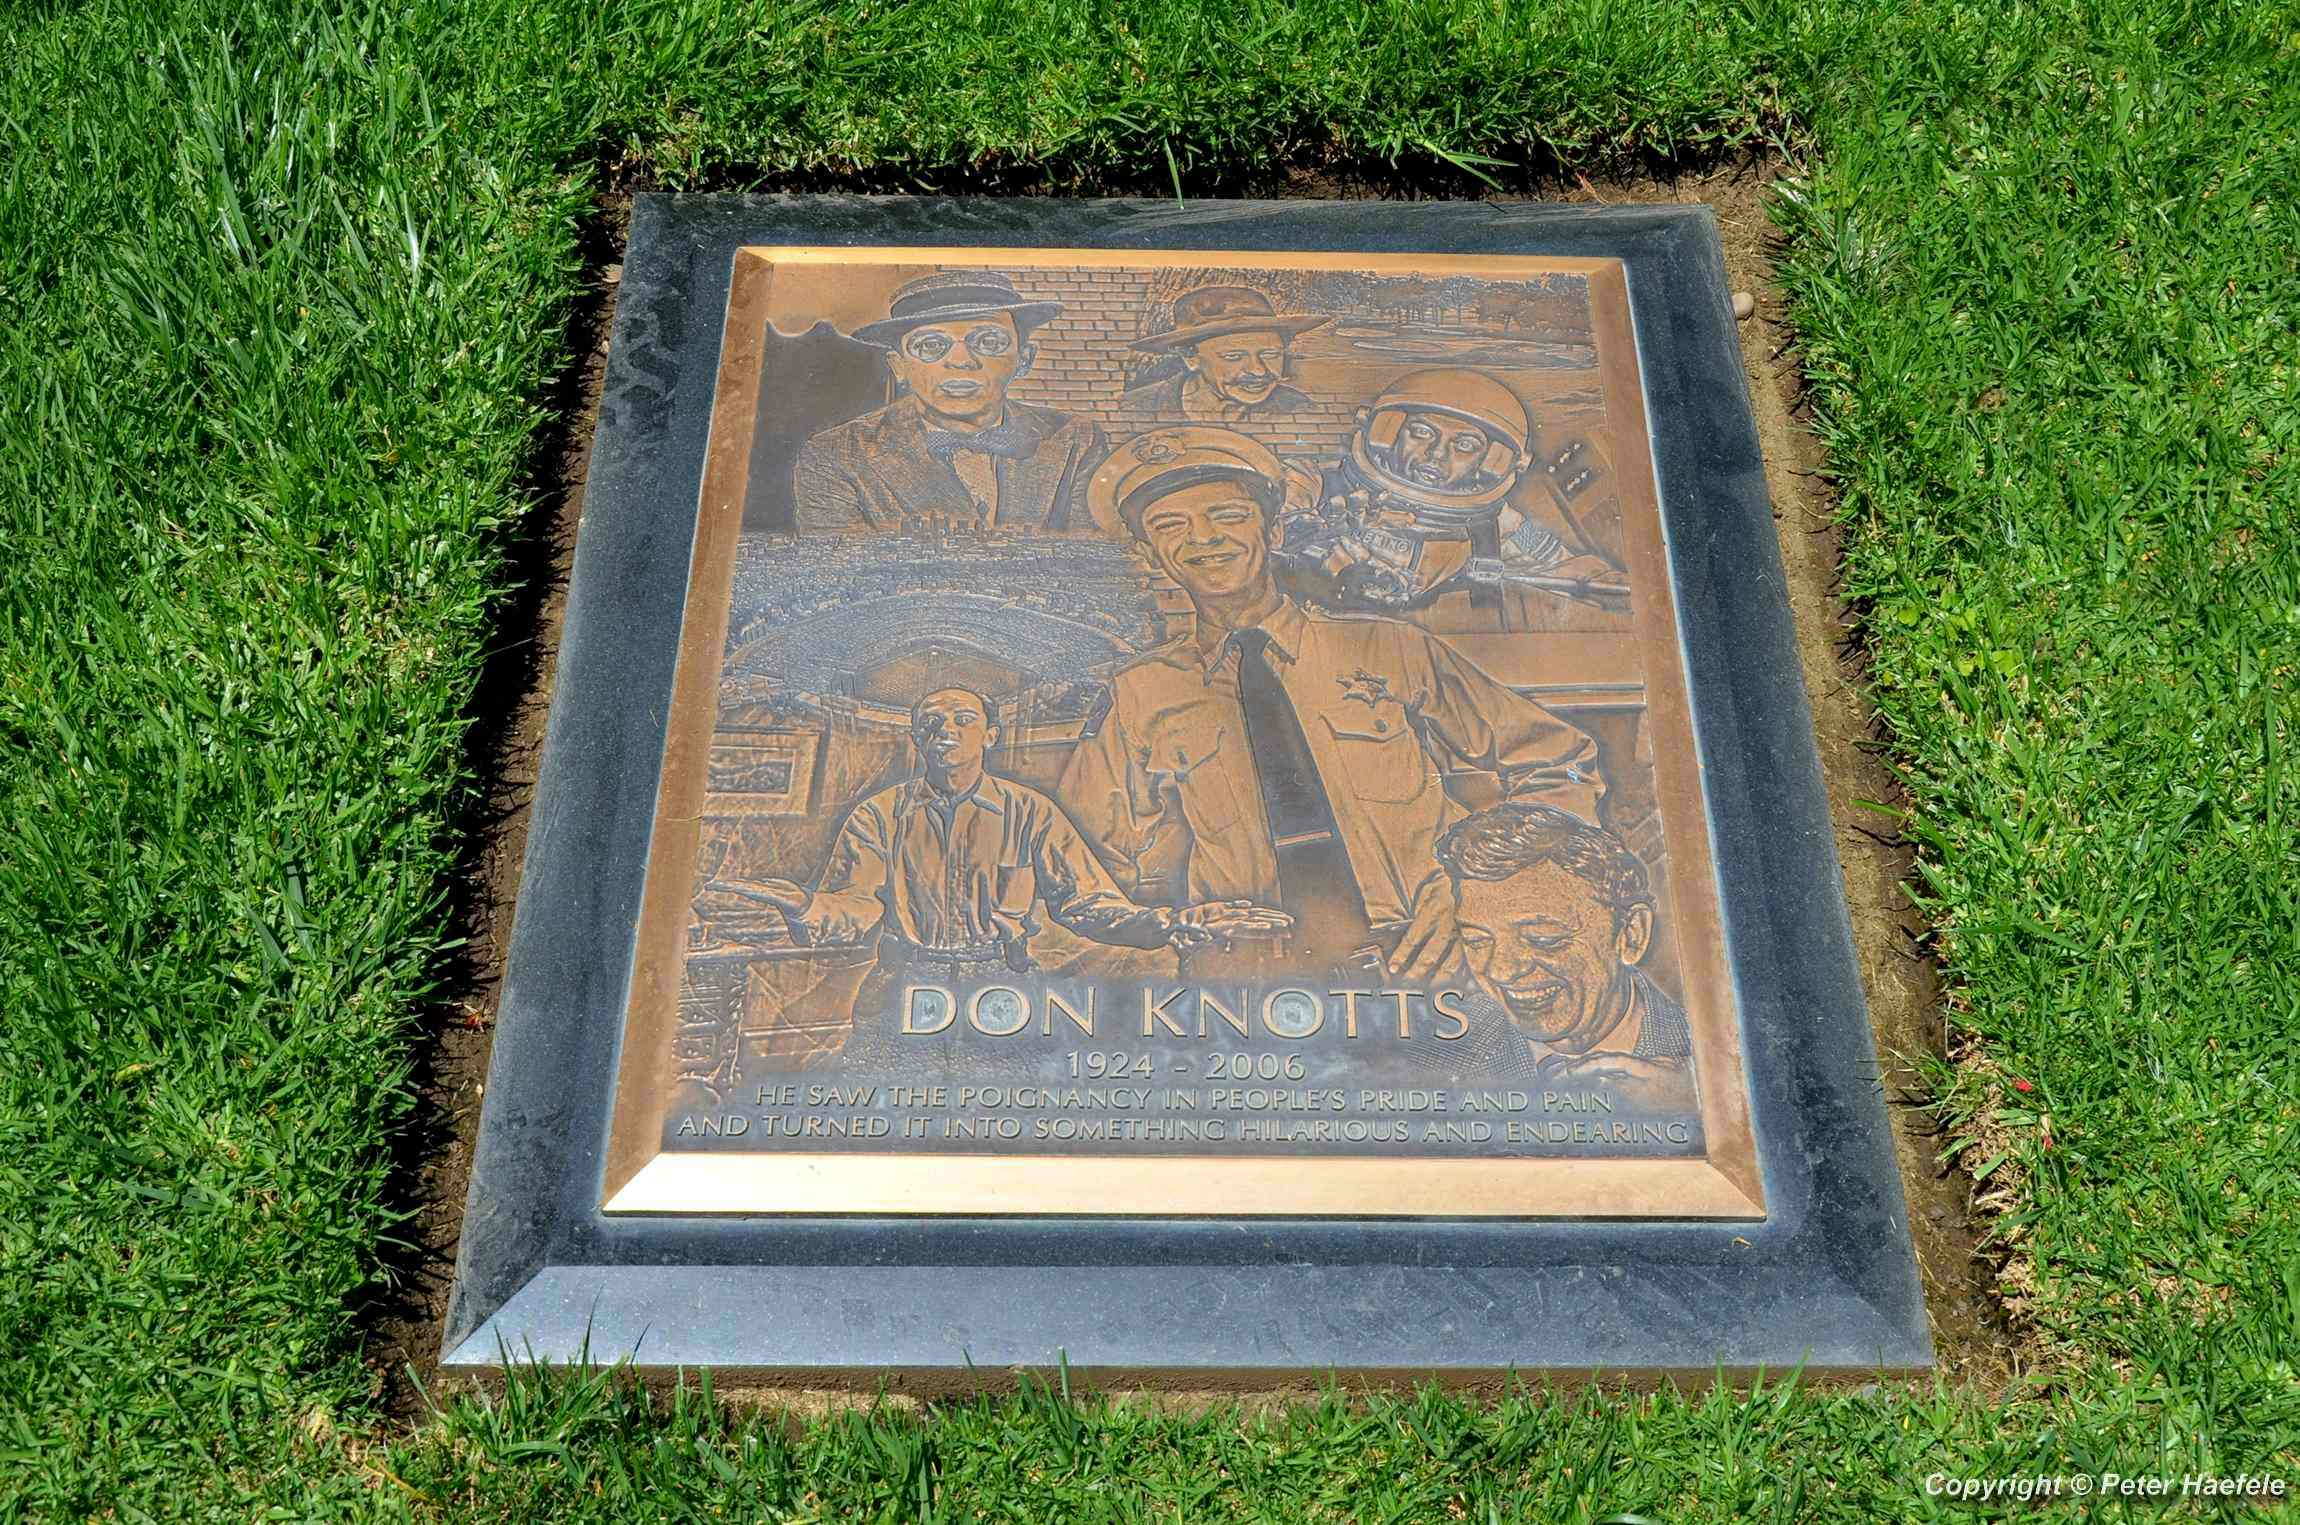 Don Knotts grave at Westwood Village Memorial Park Cemetery - © Peter Haefele Fotografie